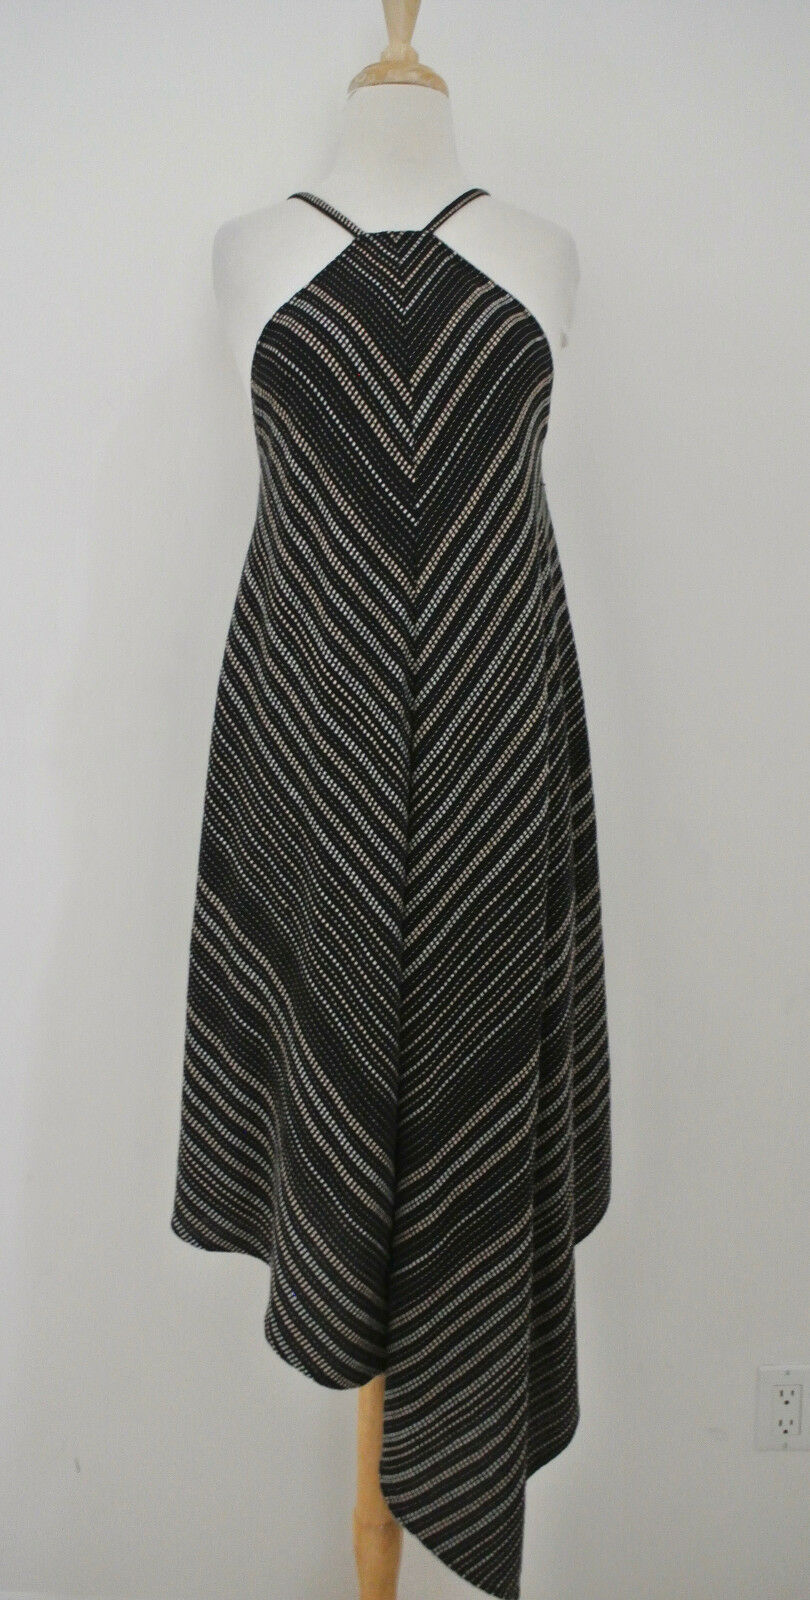 LAURA SIEGEL Handloom Asymmetric dress NWT  sz XS